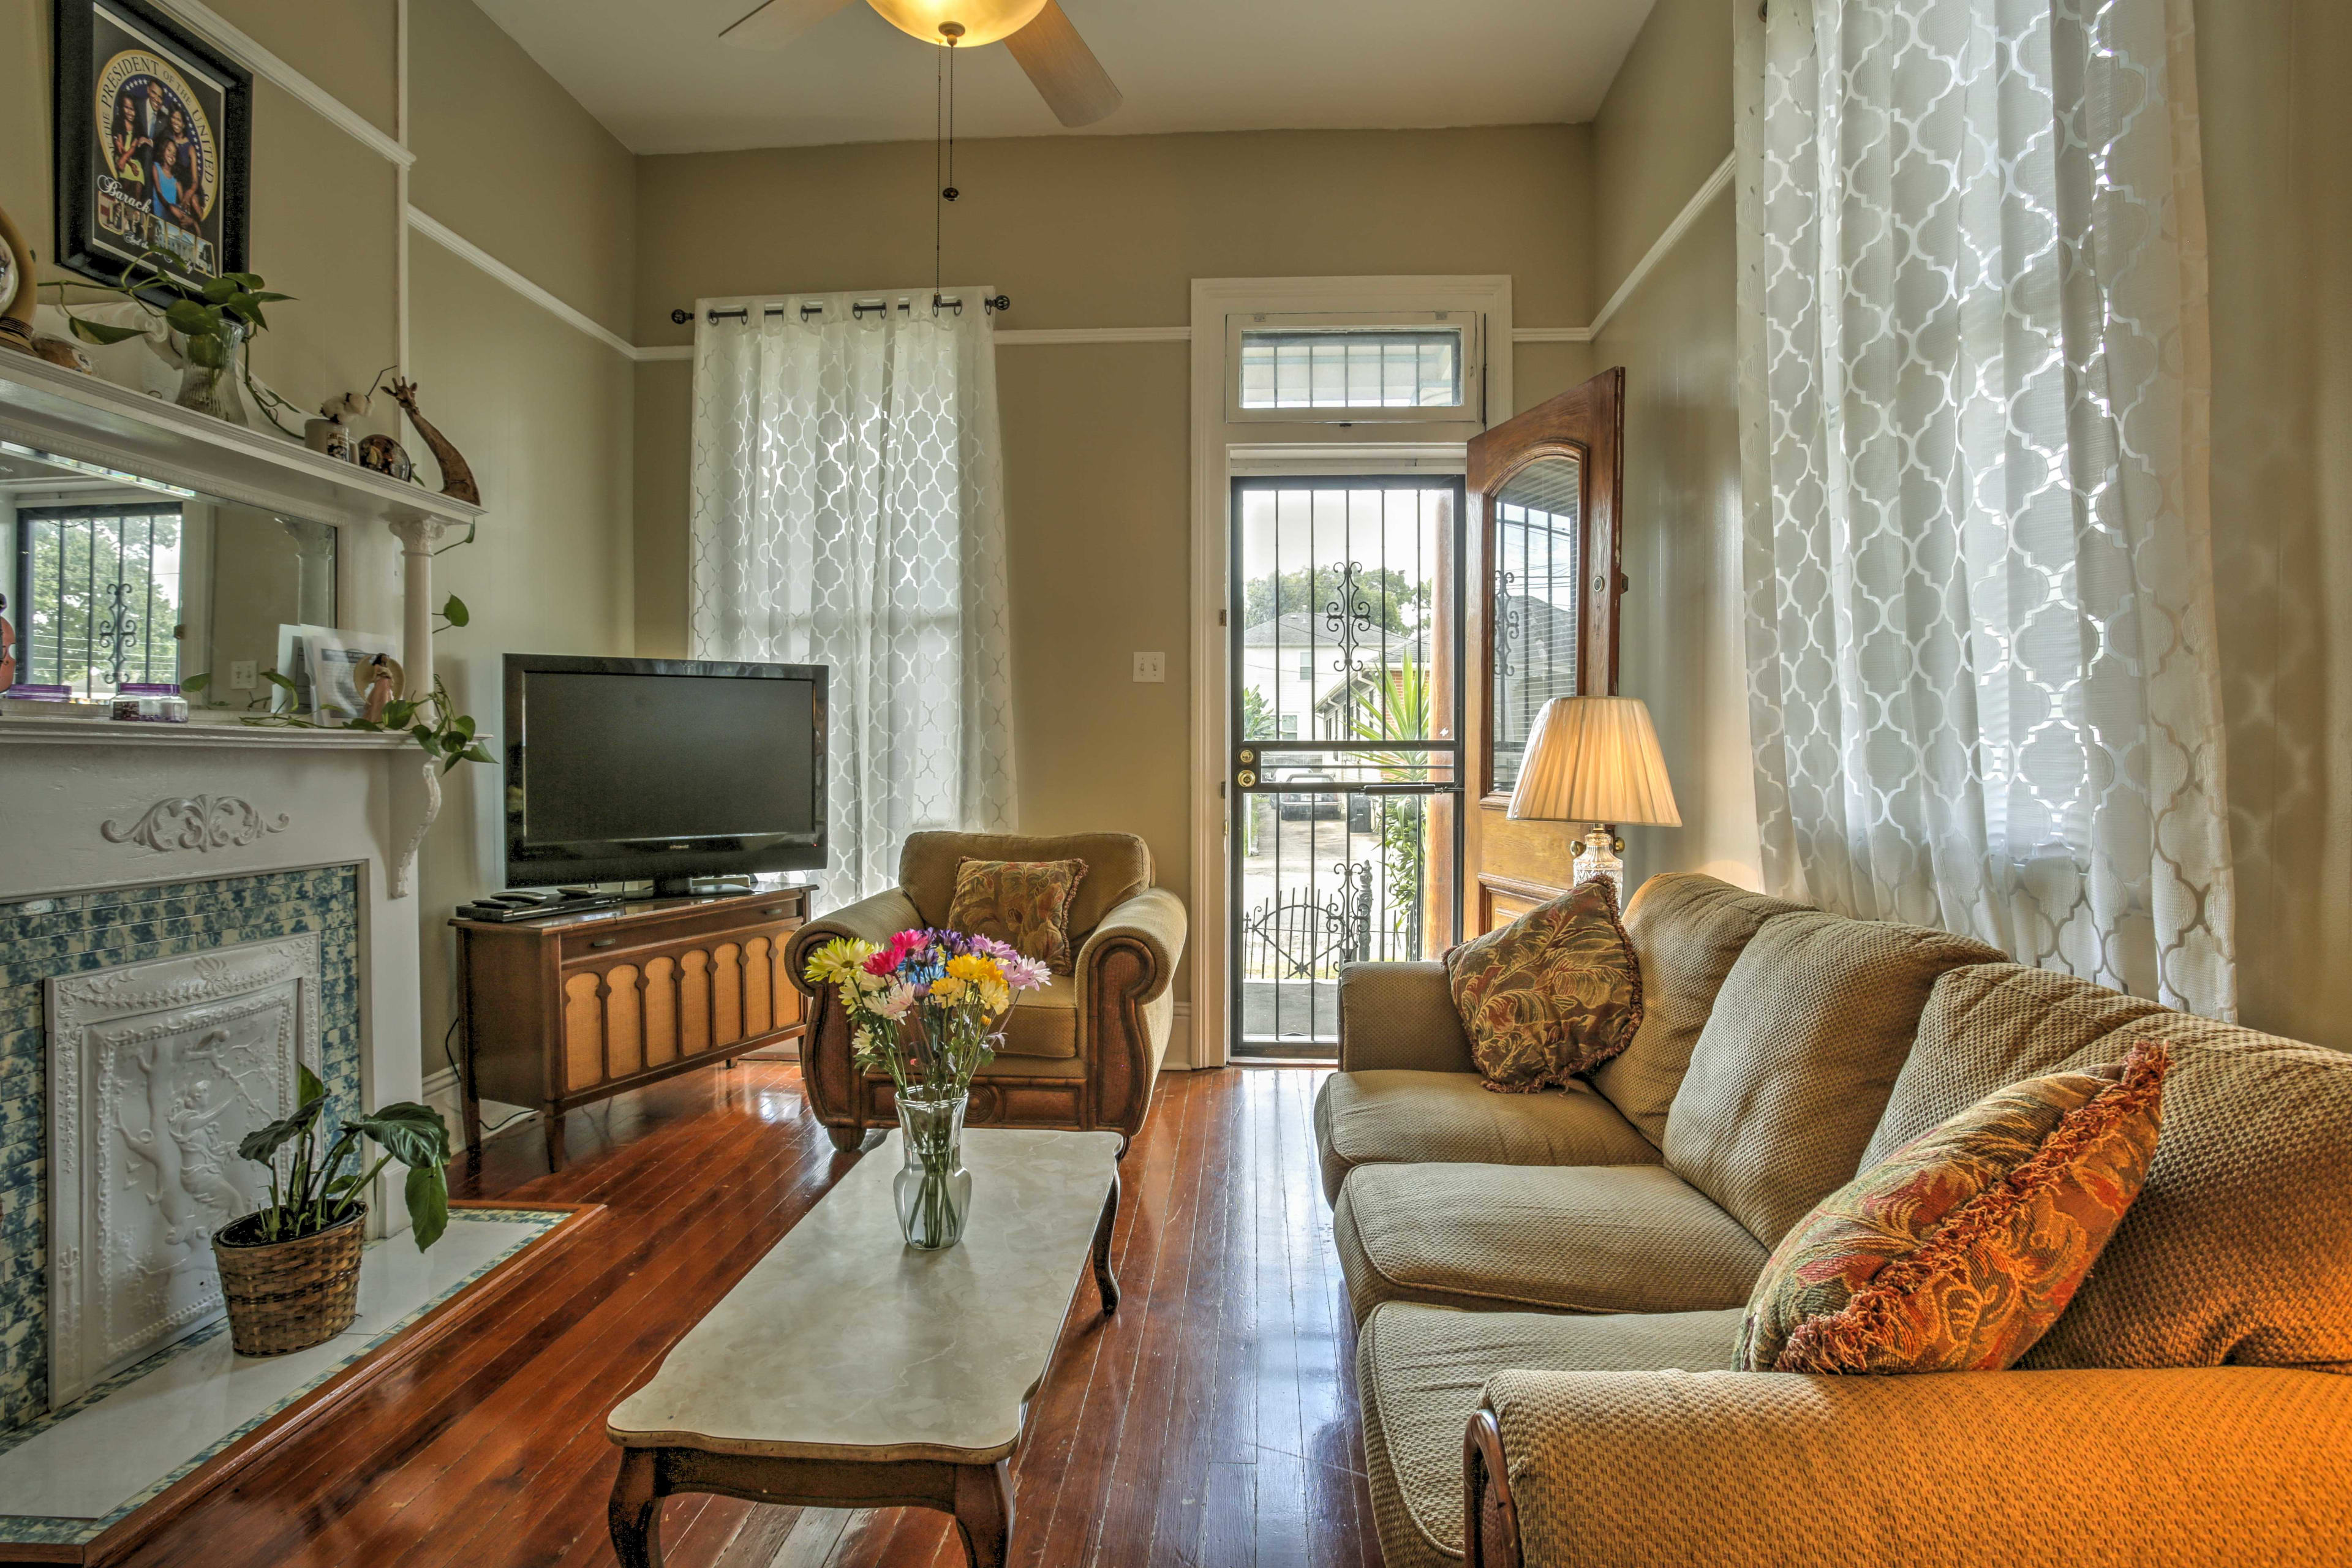 Kick back and relax on the sofa in the living room and watch your favorite shows on the flat-screen cable TV.